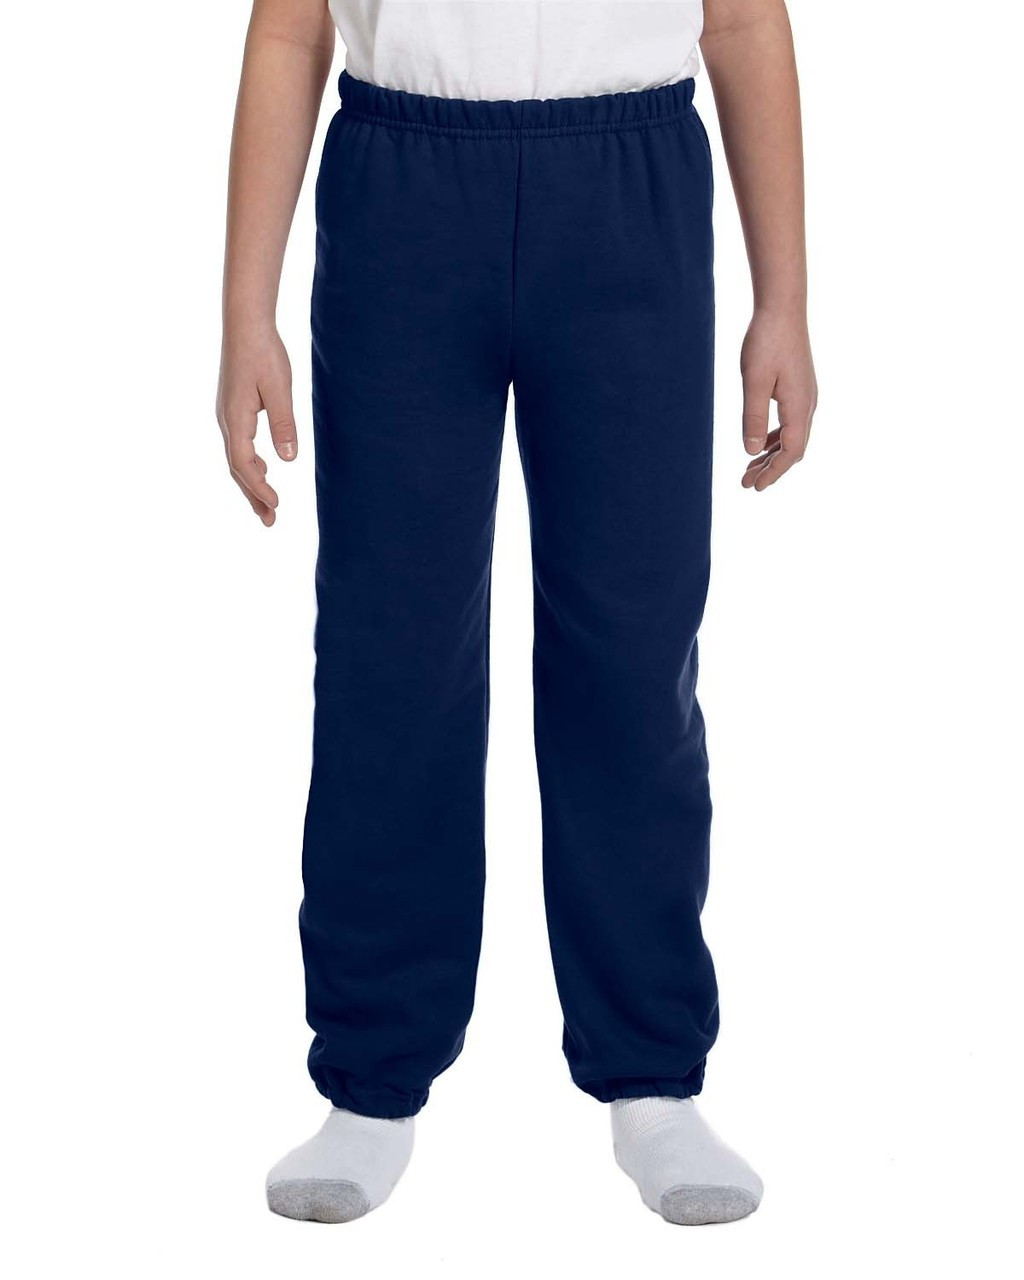 Navy - G182B Gildan Heavy Blend Youth 50/50 Sweatpants | Blankclothing.ca